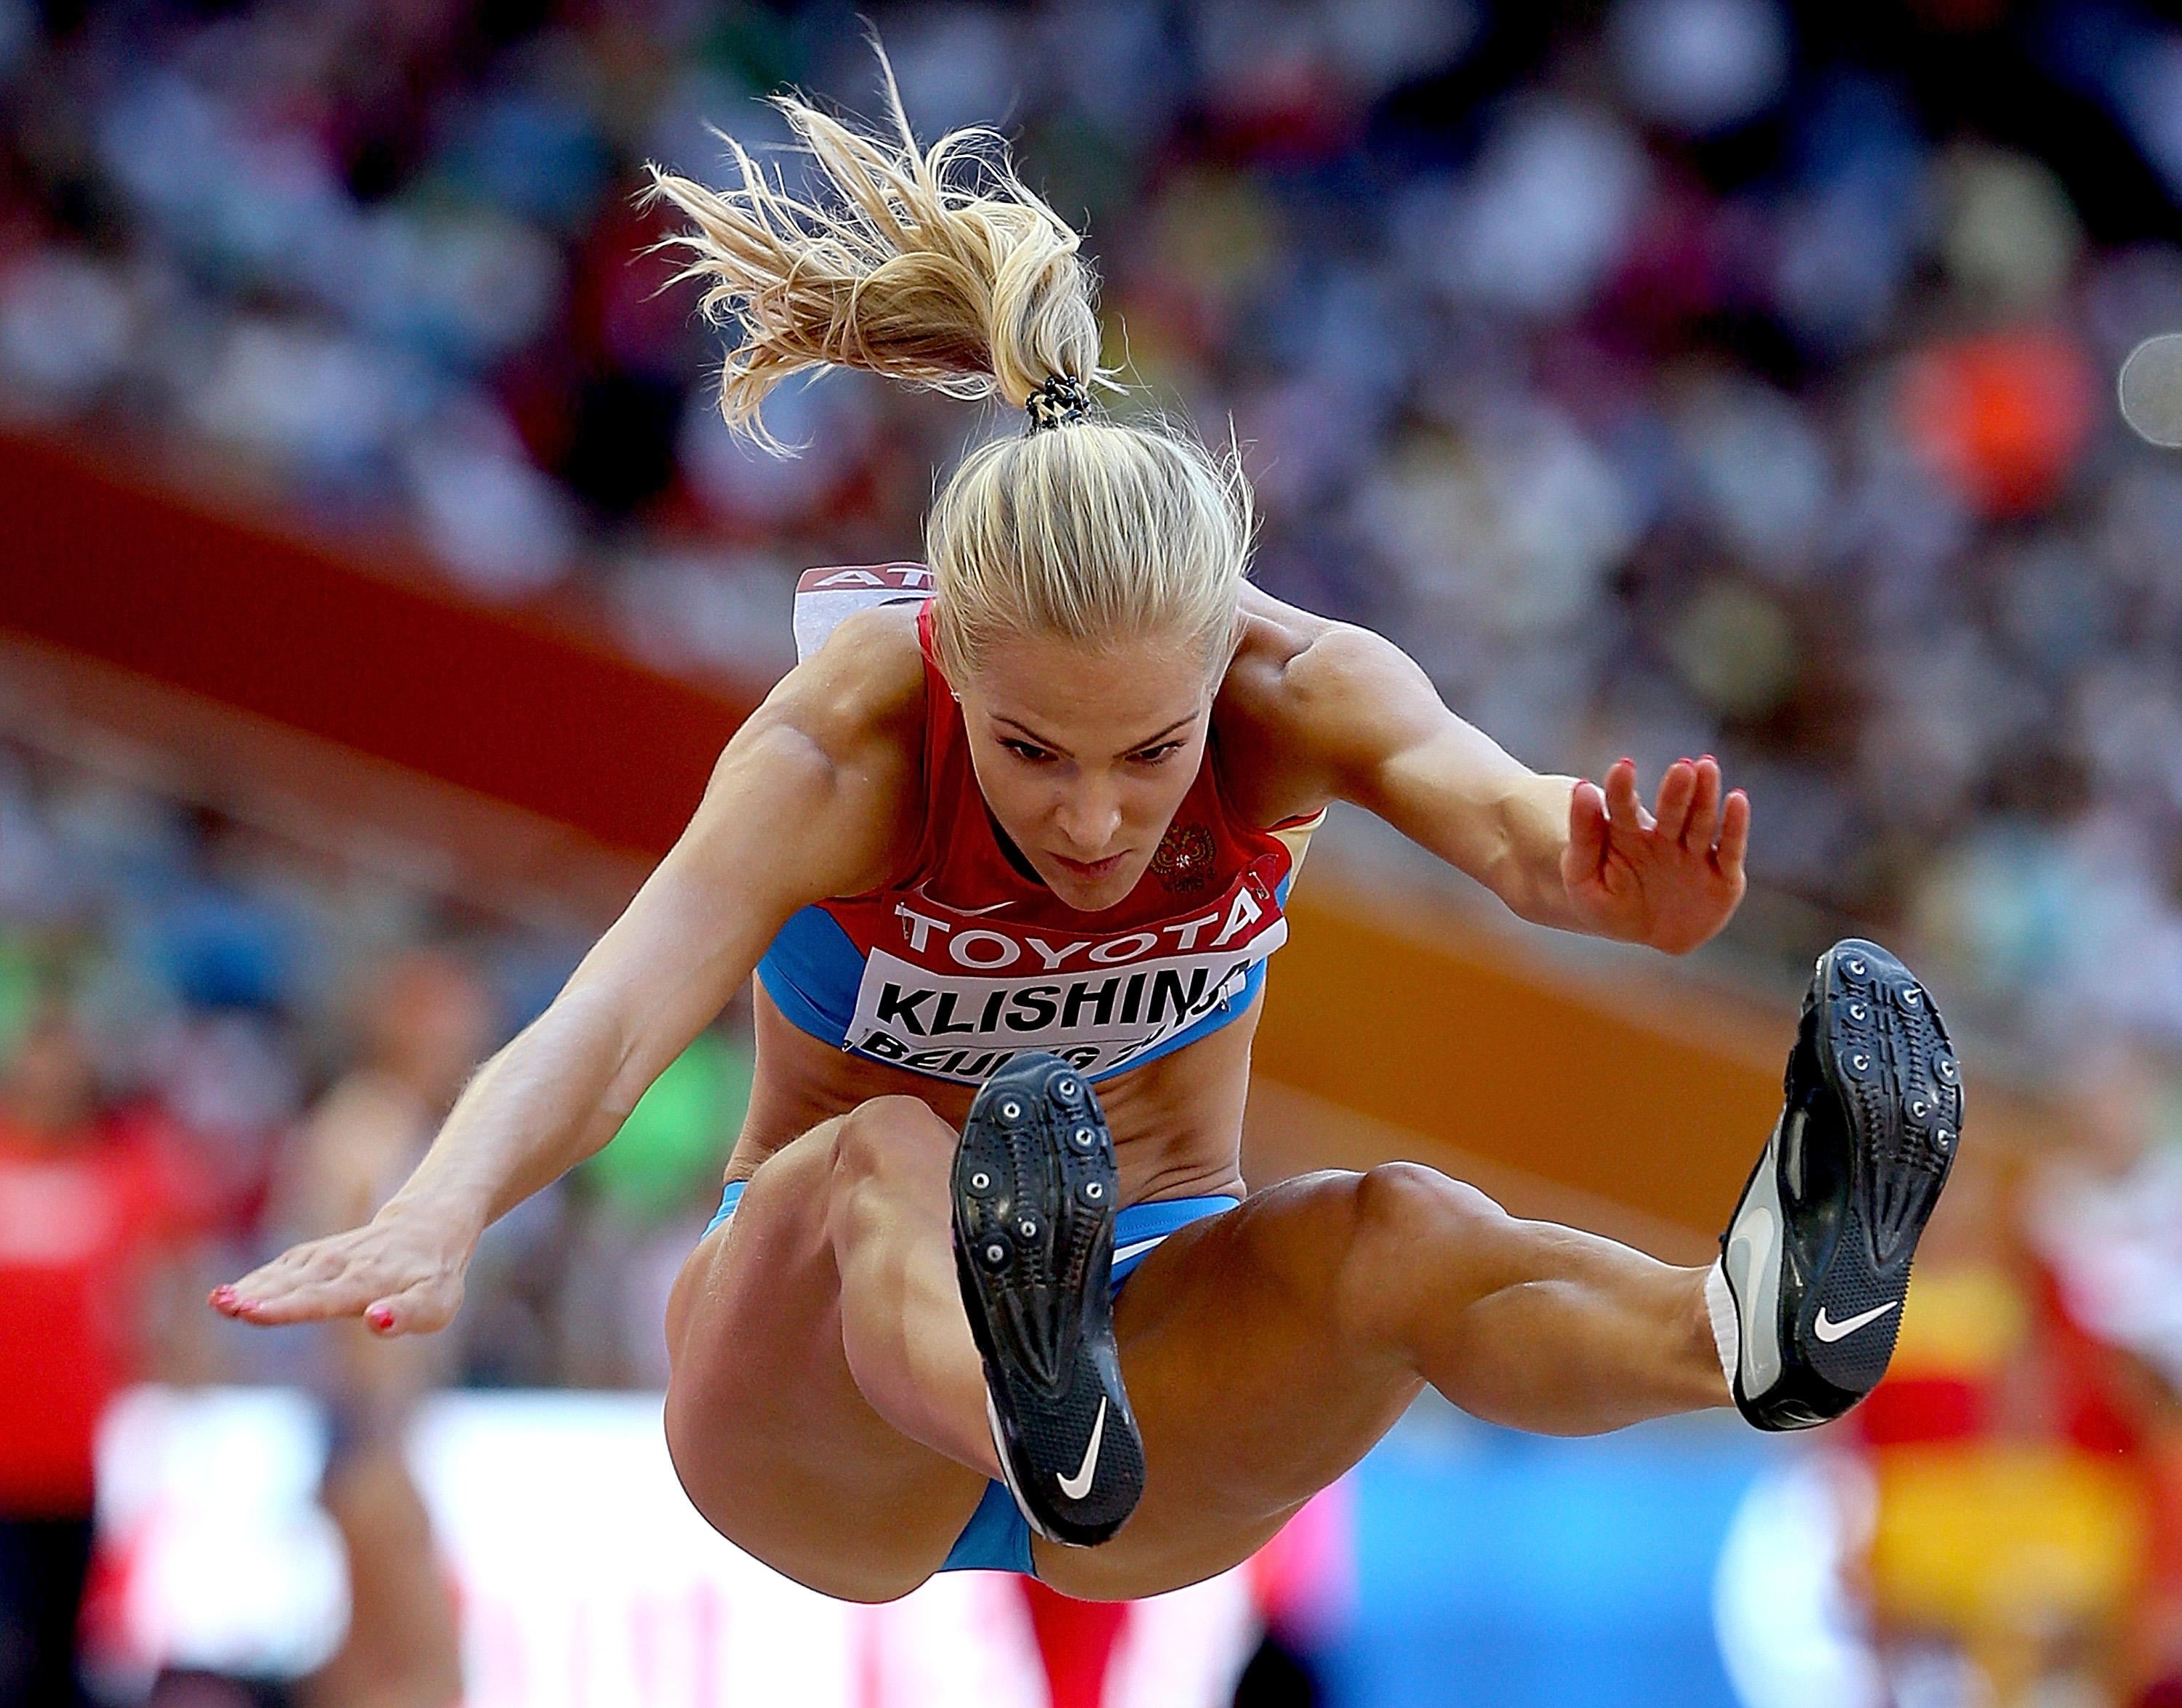 Darya Klishina, Russia's only track and field representative at the 2016 Rio Olympics, has been suspended